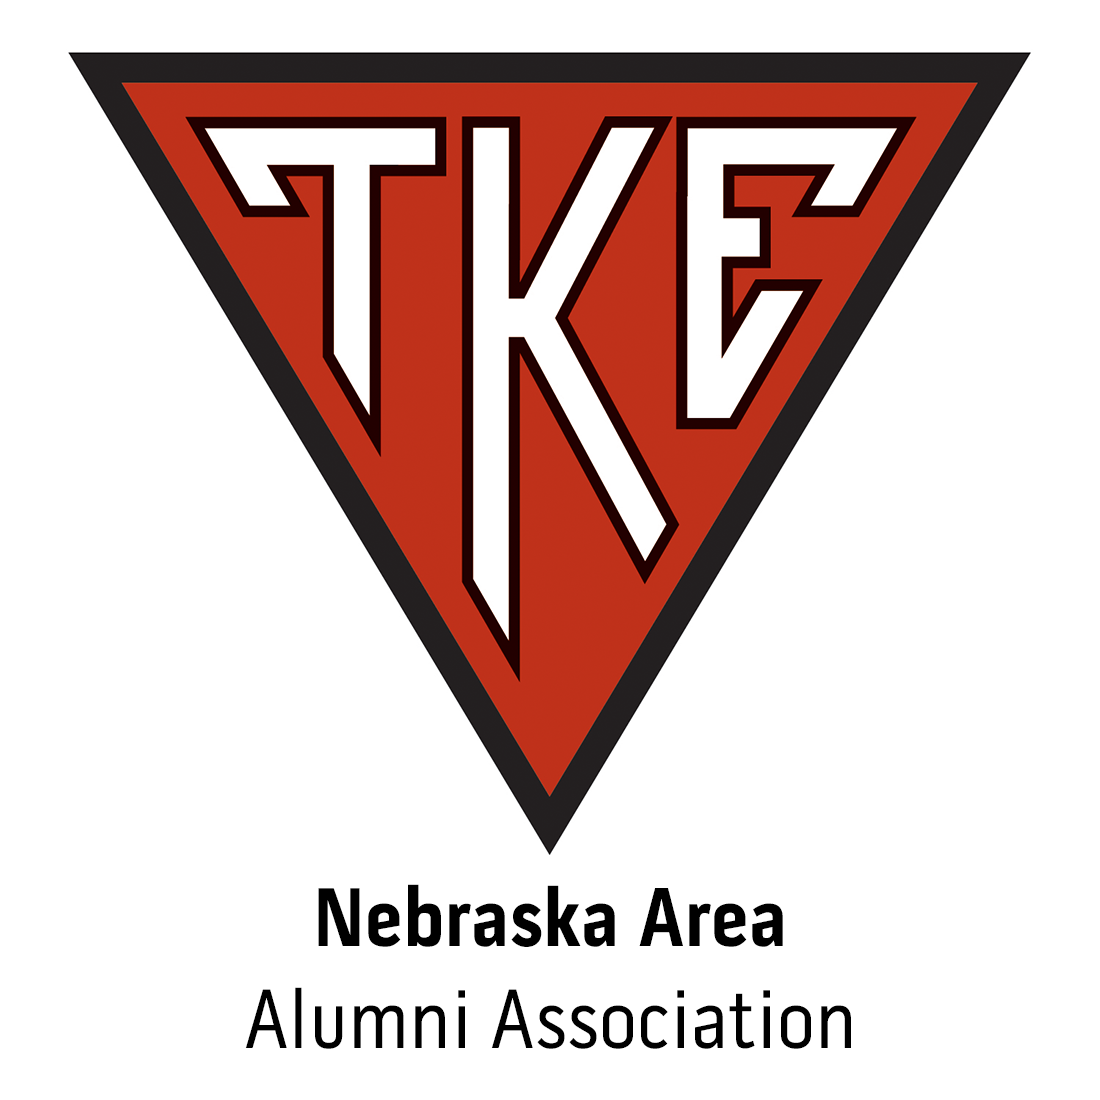 Nebraska Area Alumni Association at State of Nebraska